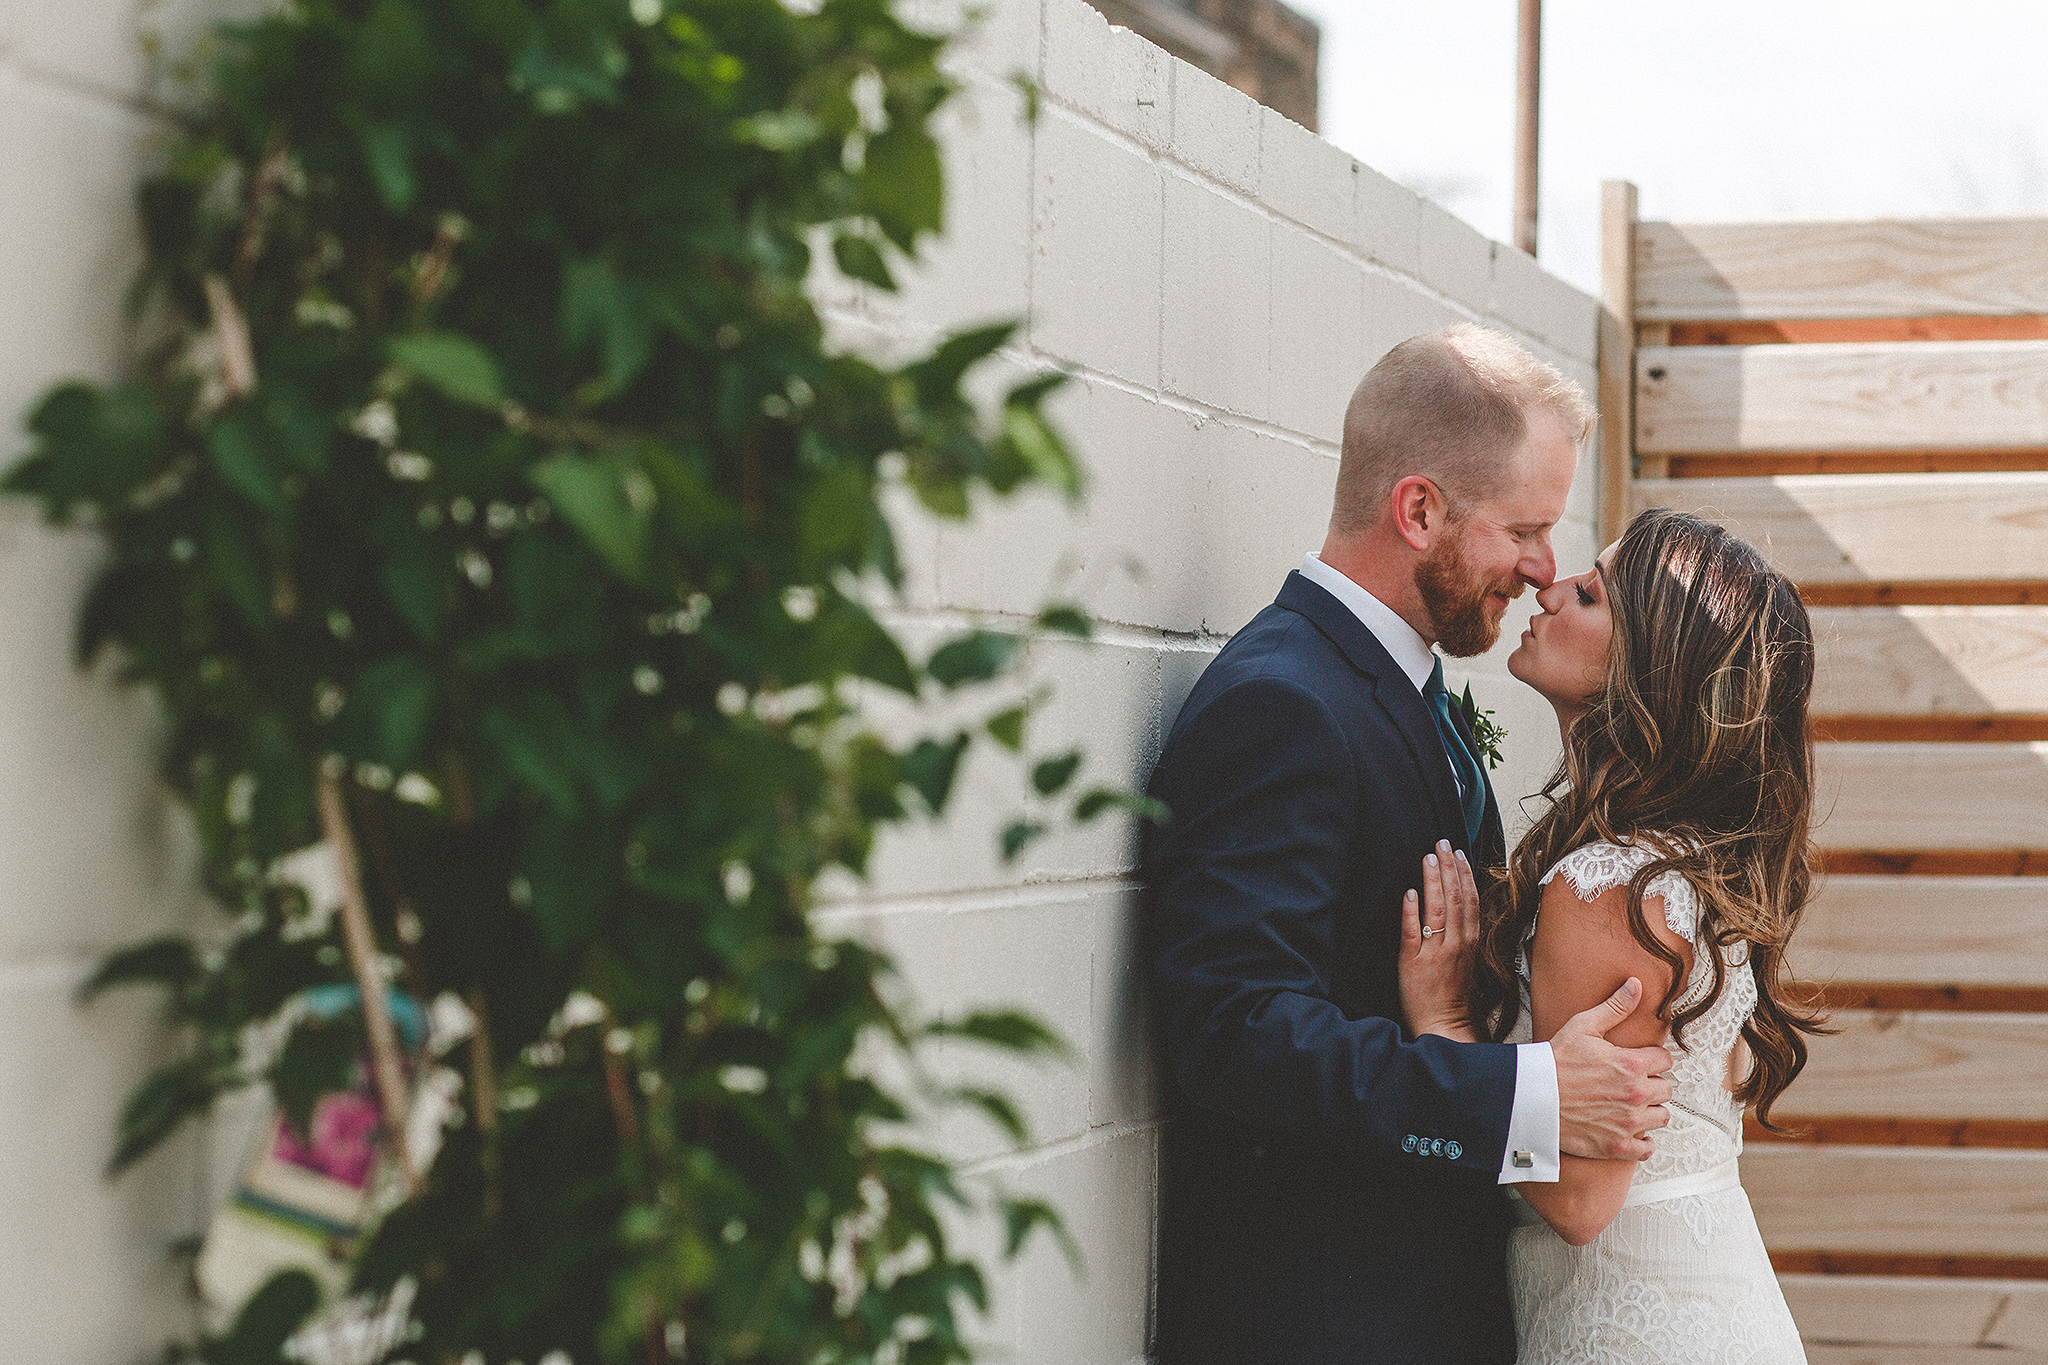 bride/groom candid intimate picture | the ivy house milwaukee wedding photographer | chrissy deming